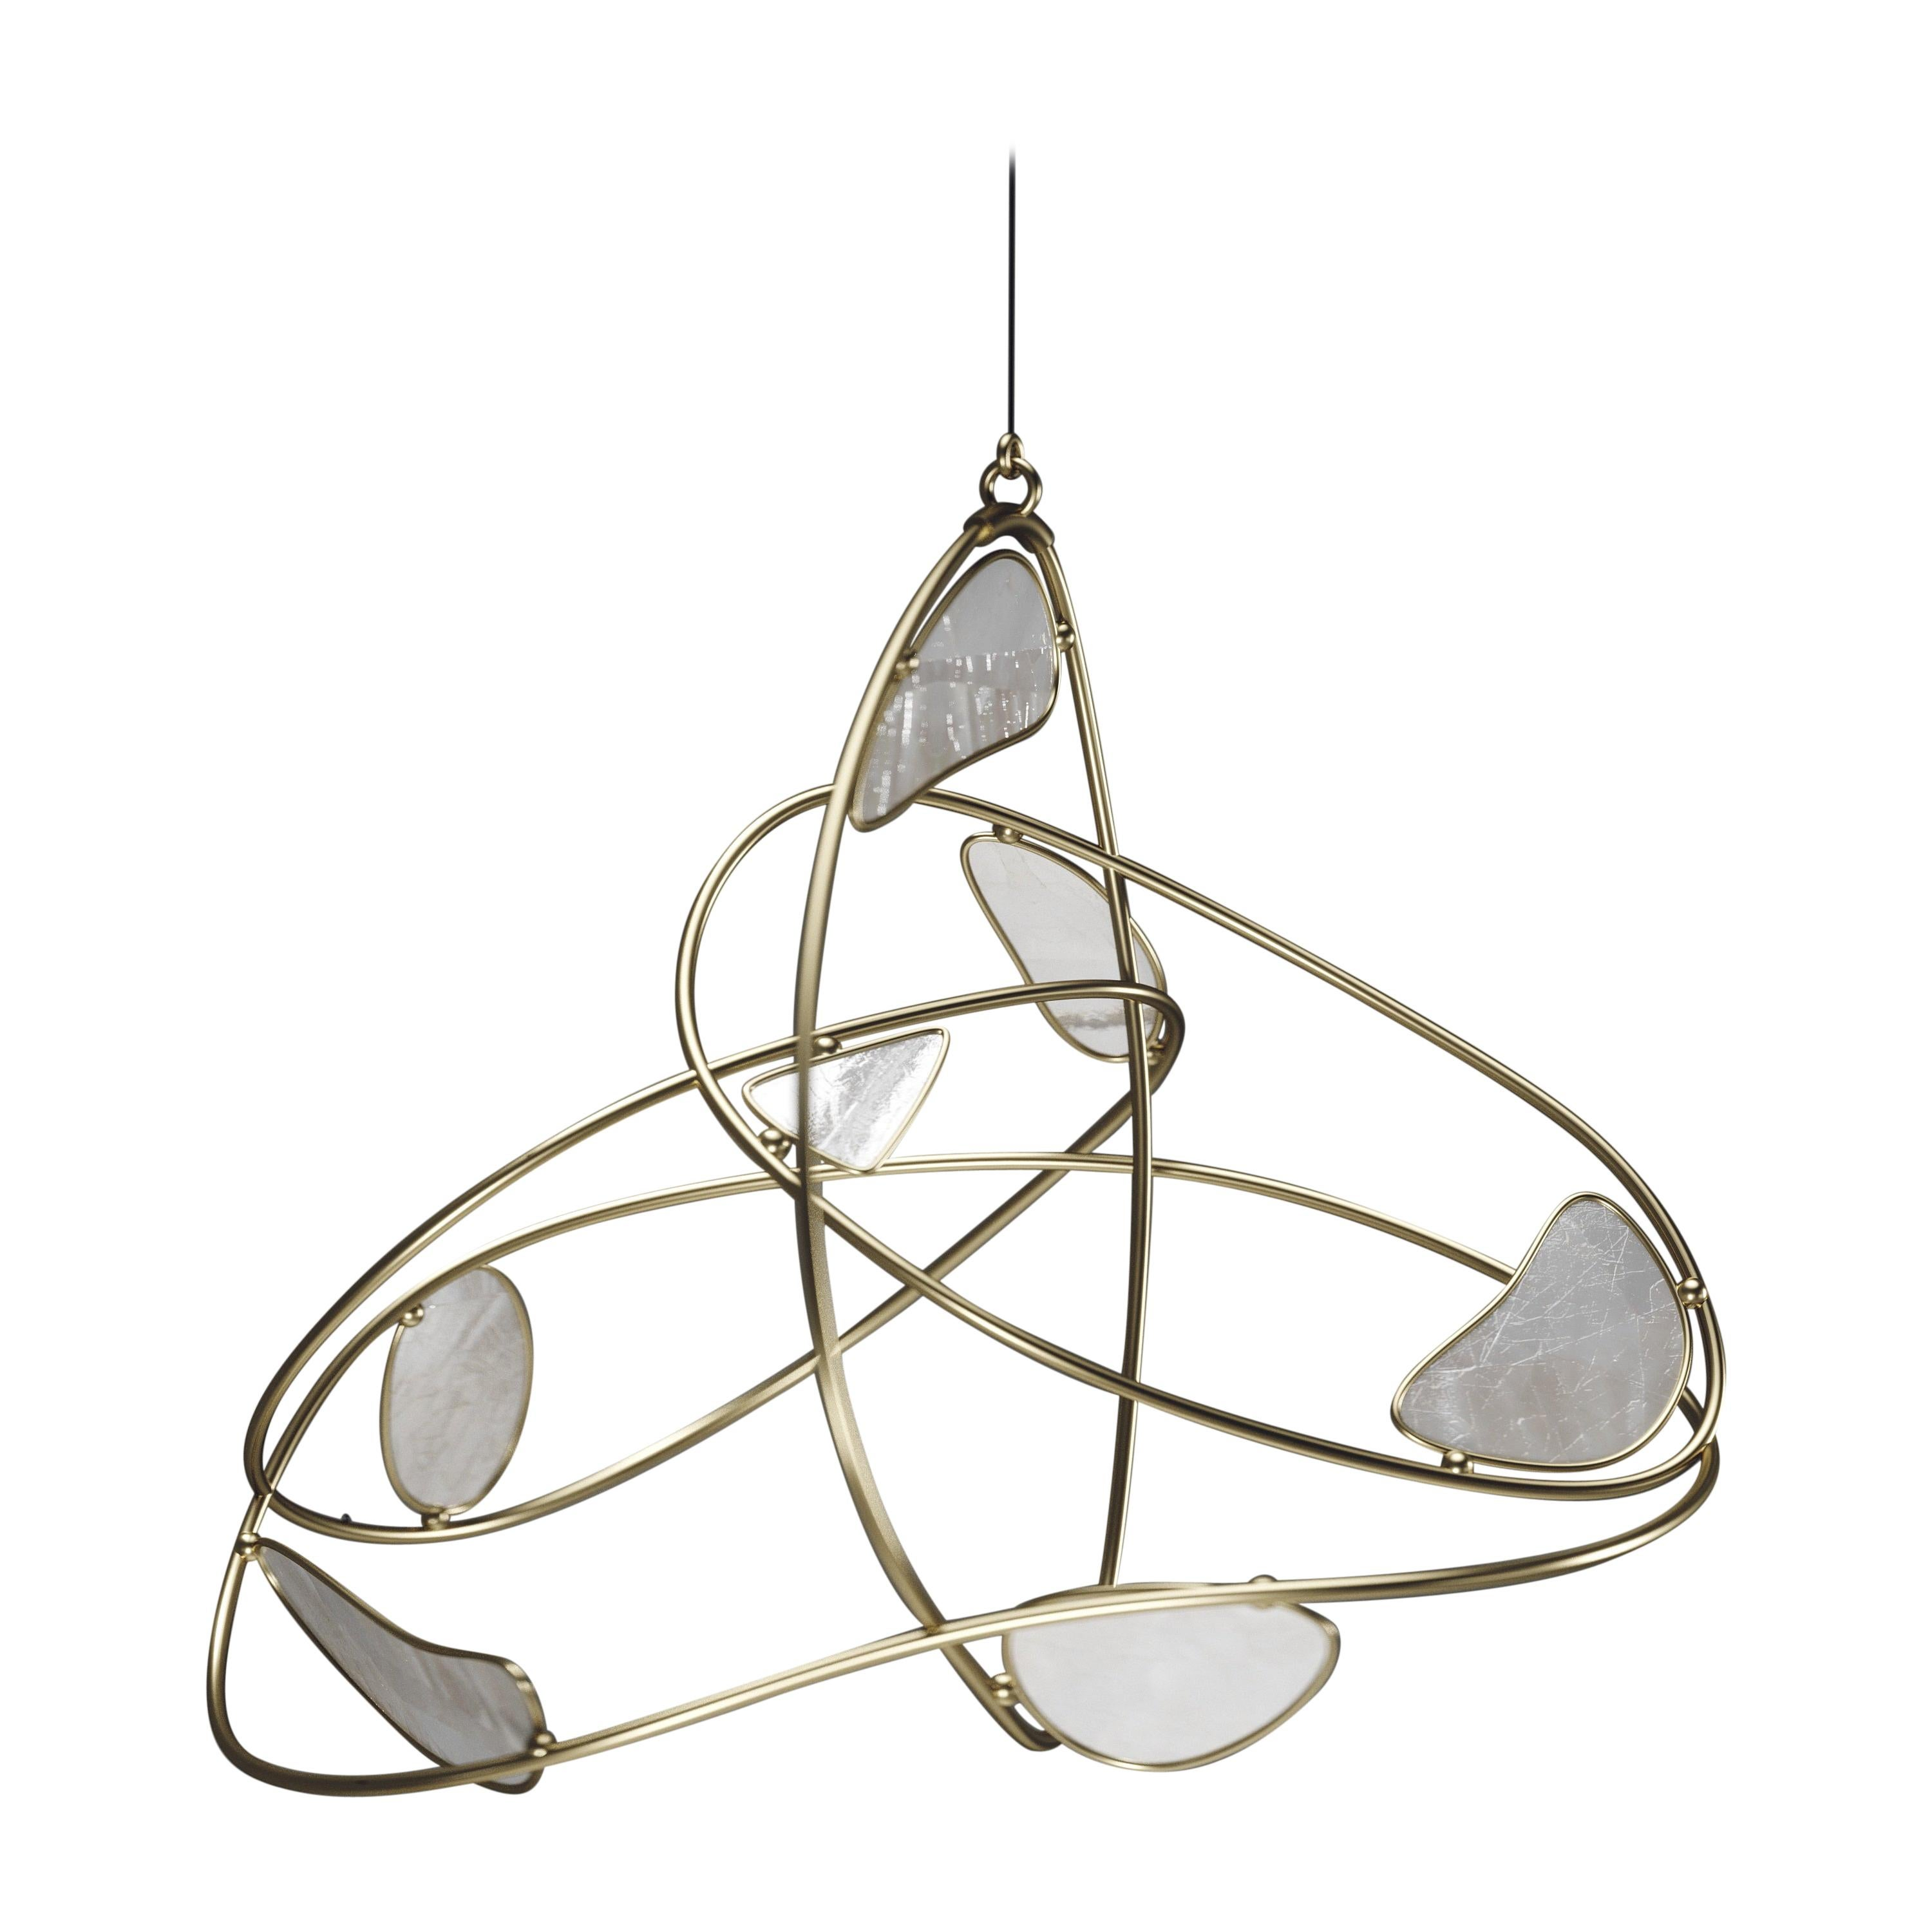 Mobile in Bronze-Patina Brass and Mother of Pearl by Kifu Paris